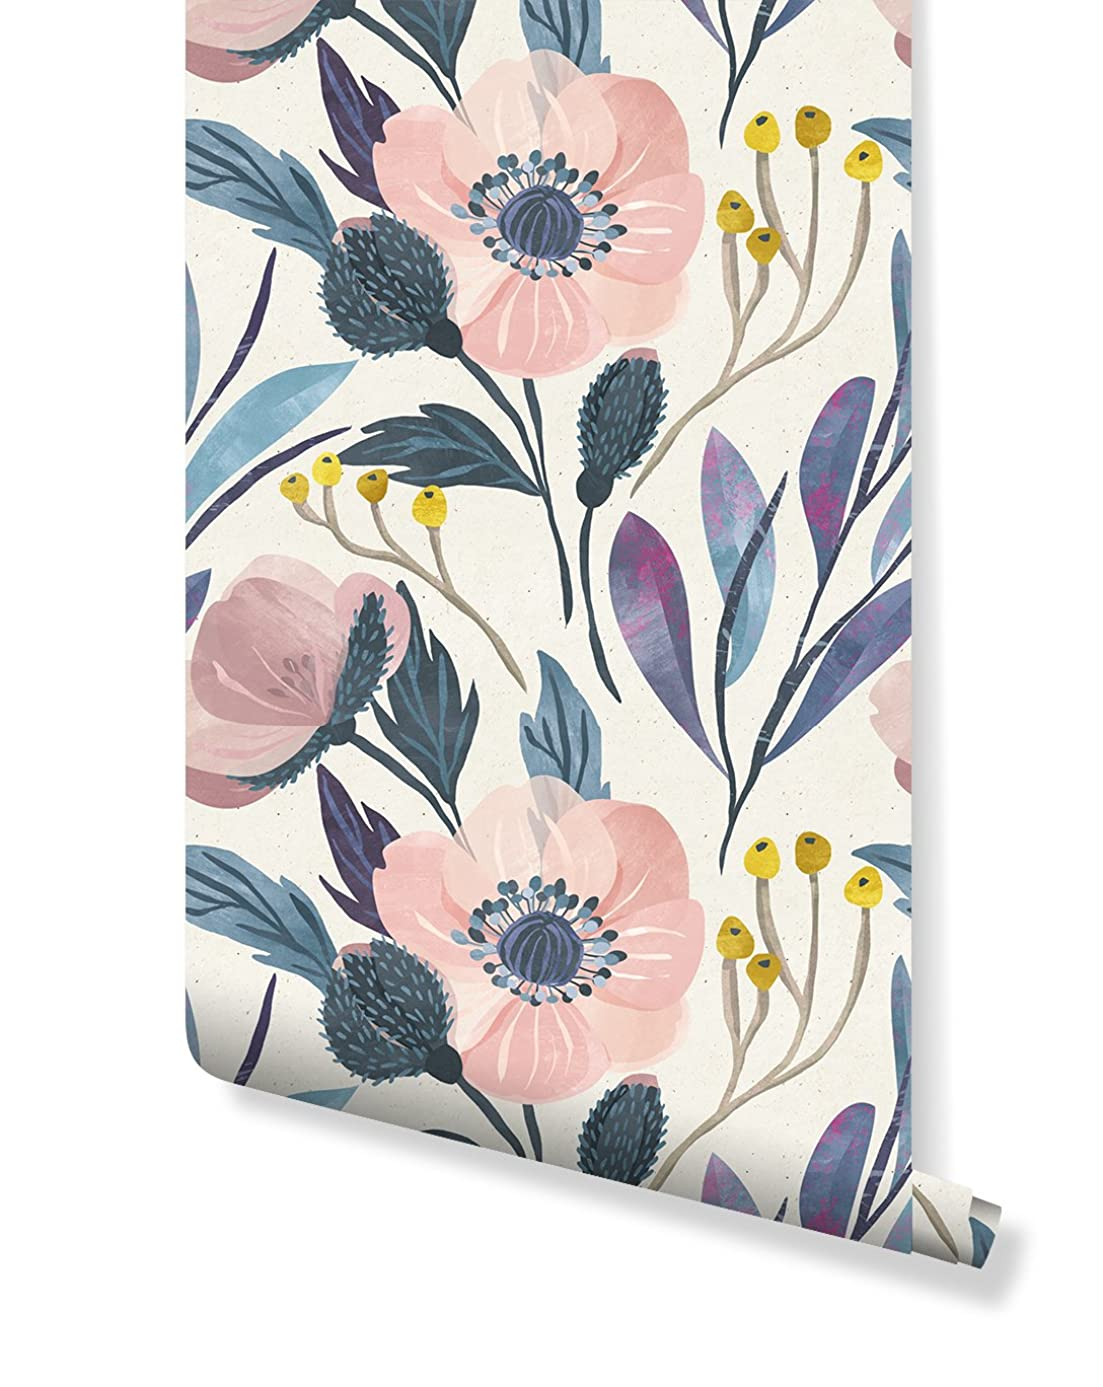 Temporary Self Adhesive Wallpaper Sample with Watercolor Floral Pattern on Paper Texture, Great for Bedroom & Living Room Wall Decor, Peel and Stick Application CC005 (6'' x 10'')